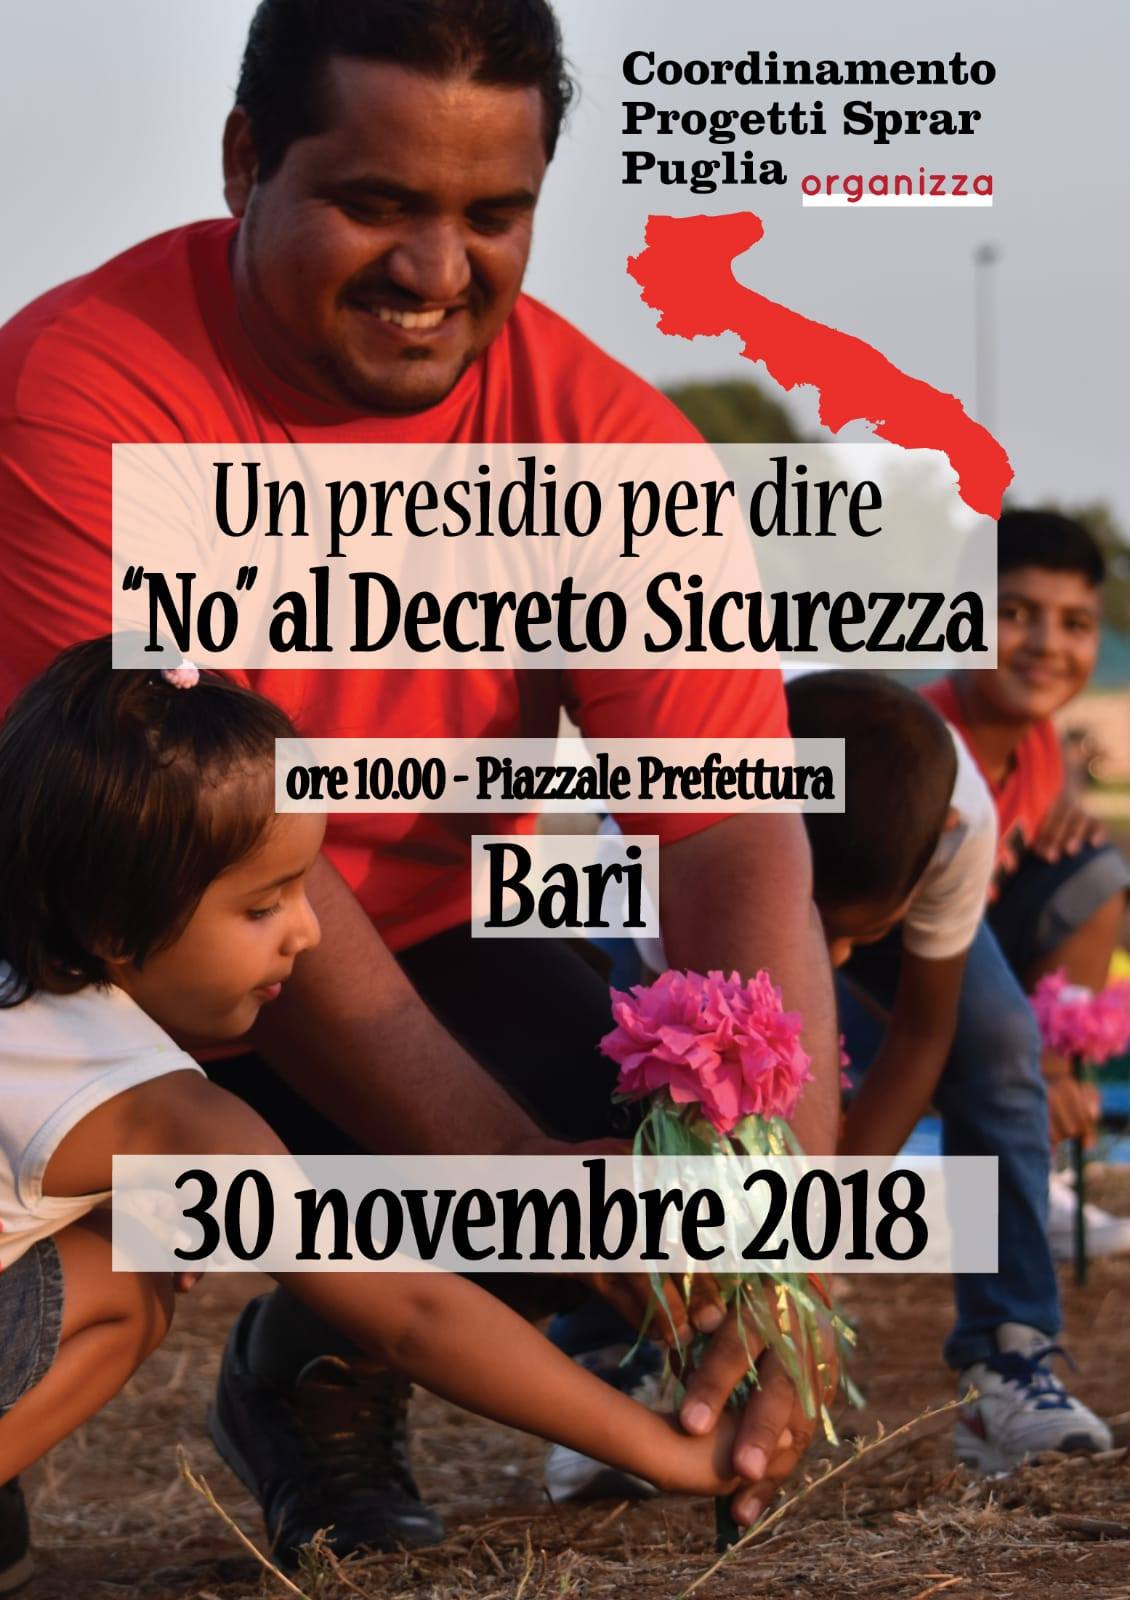 No decreto sicurezza